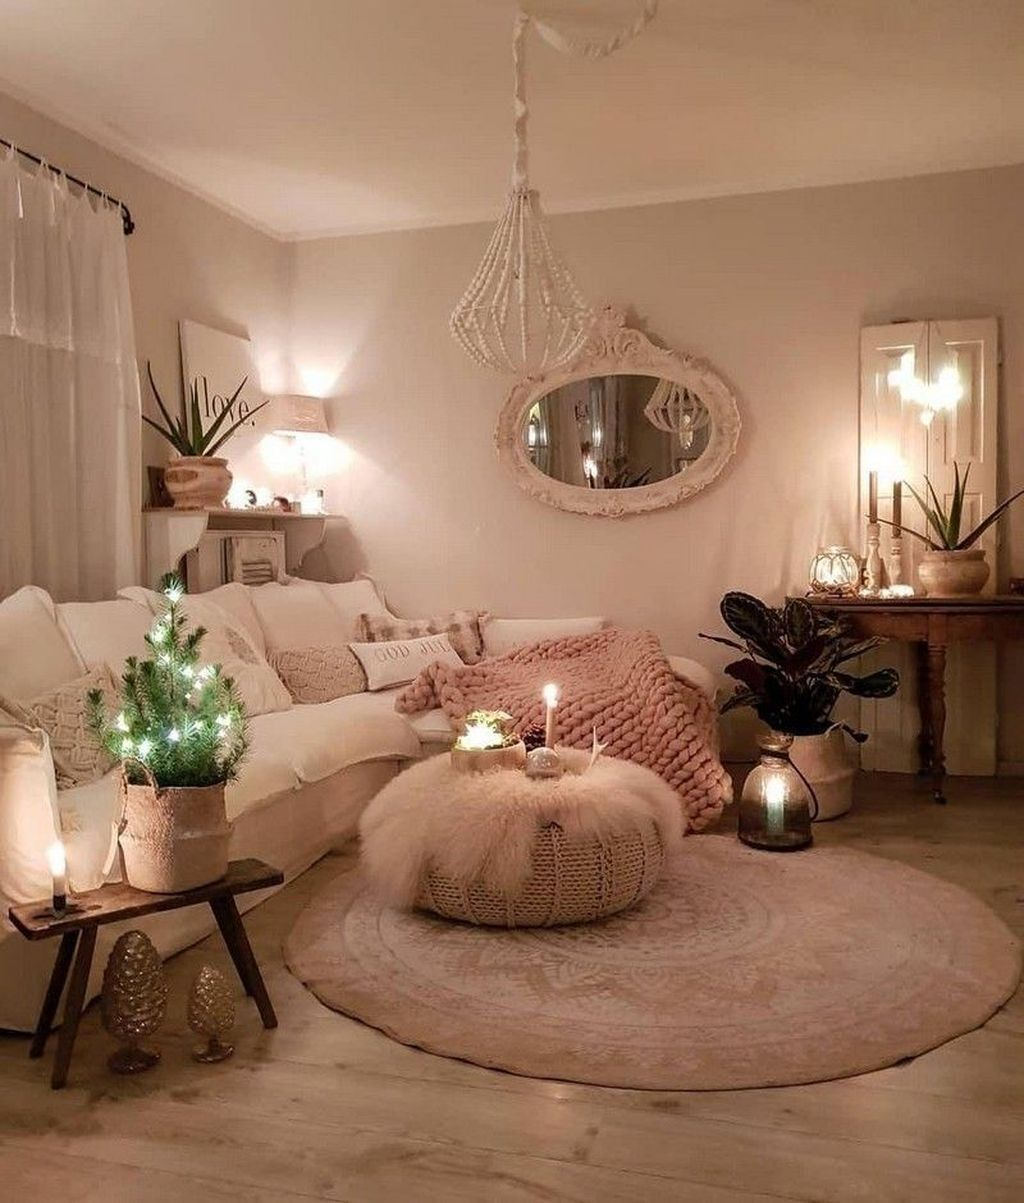 43 Awesome Bohemian Living Room Decor Ideas,  #Awesome #bohemian #Decor #Ideas #Living #Room #Awesome #Bohemian #Living #Room #Decor #Ideas, ##Awesome ##bohemian ##Decor ##Ideas ##Living ##Room